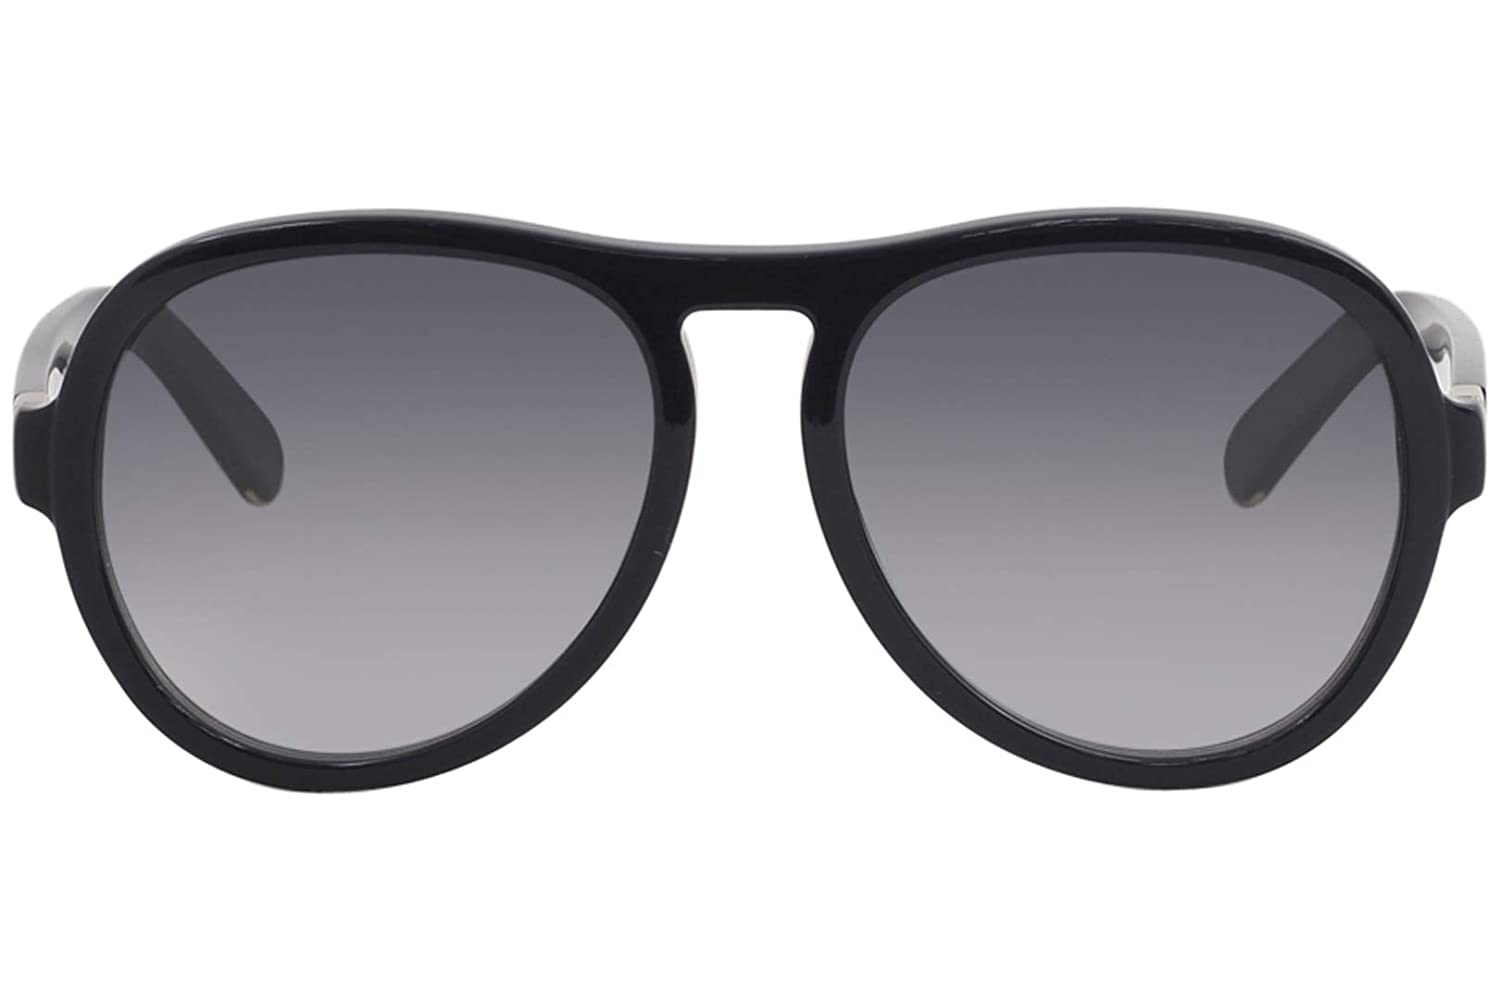 Sunglasses CHLOE CE716S 424 BLUE at Amazon Mens Clothing store: